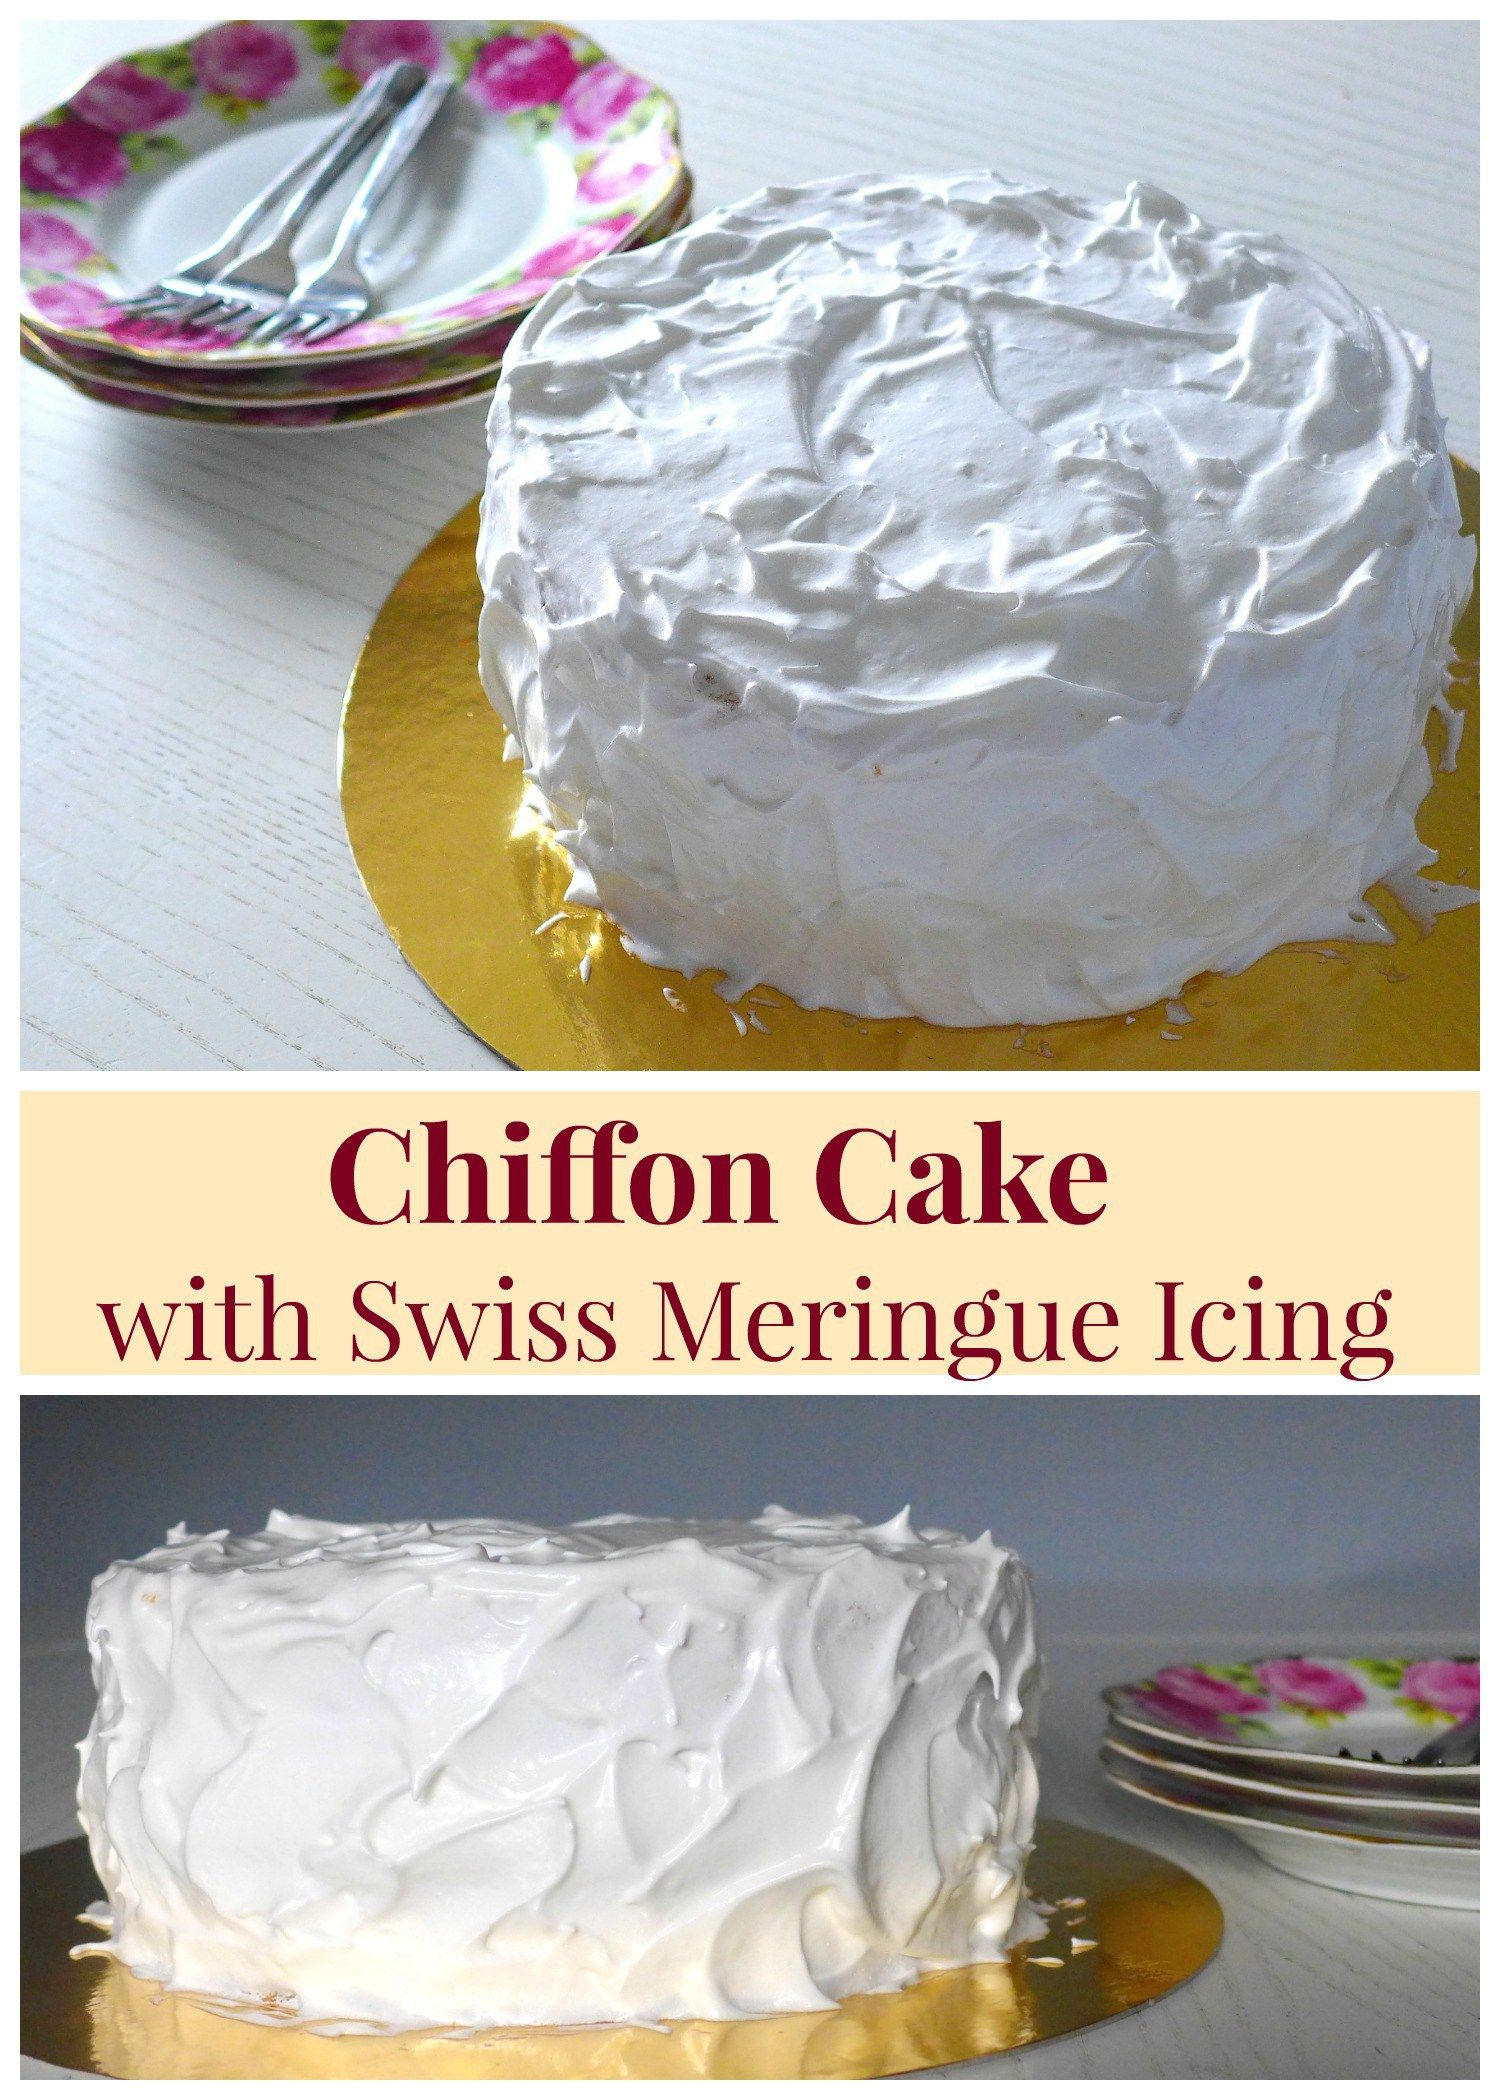 Superb Chiffon Cake With Swiss Meringue Icing Recipe Chiffon Cake Funny Birthday Cards Online Inifofree Goldxyz